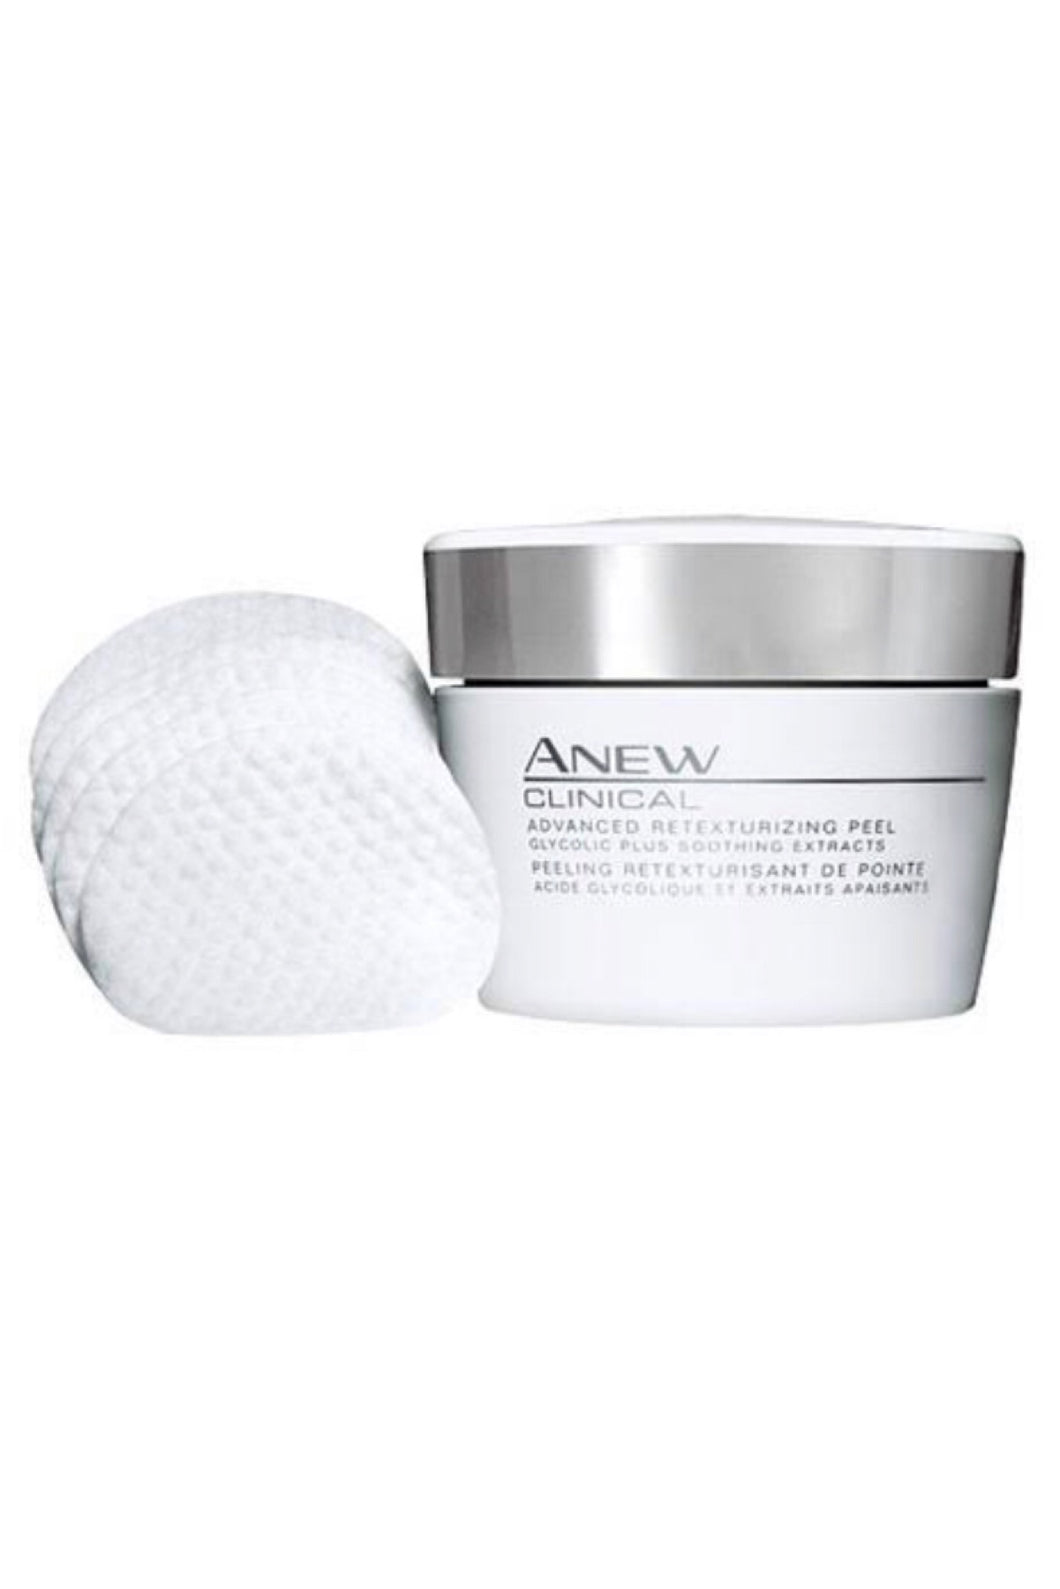 Avon Clinical Advanced Resurfacing Peel Treatment Pads 30